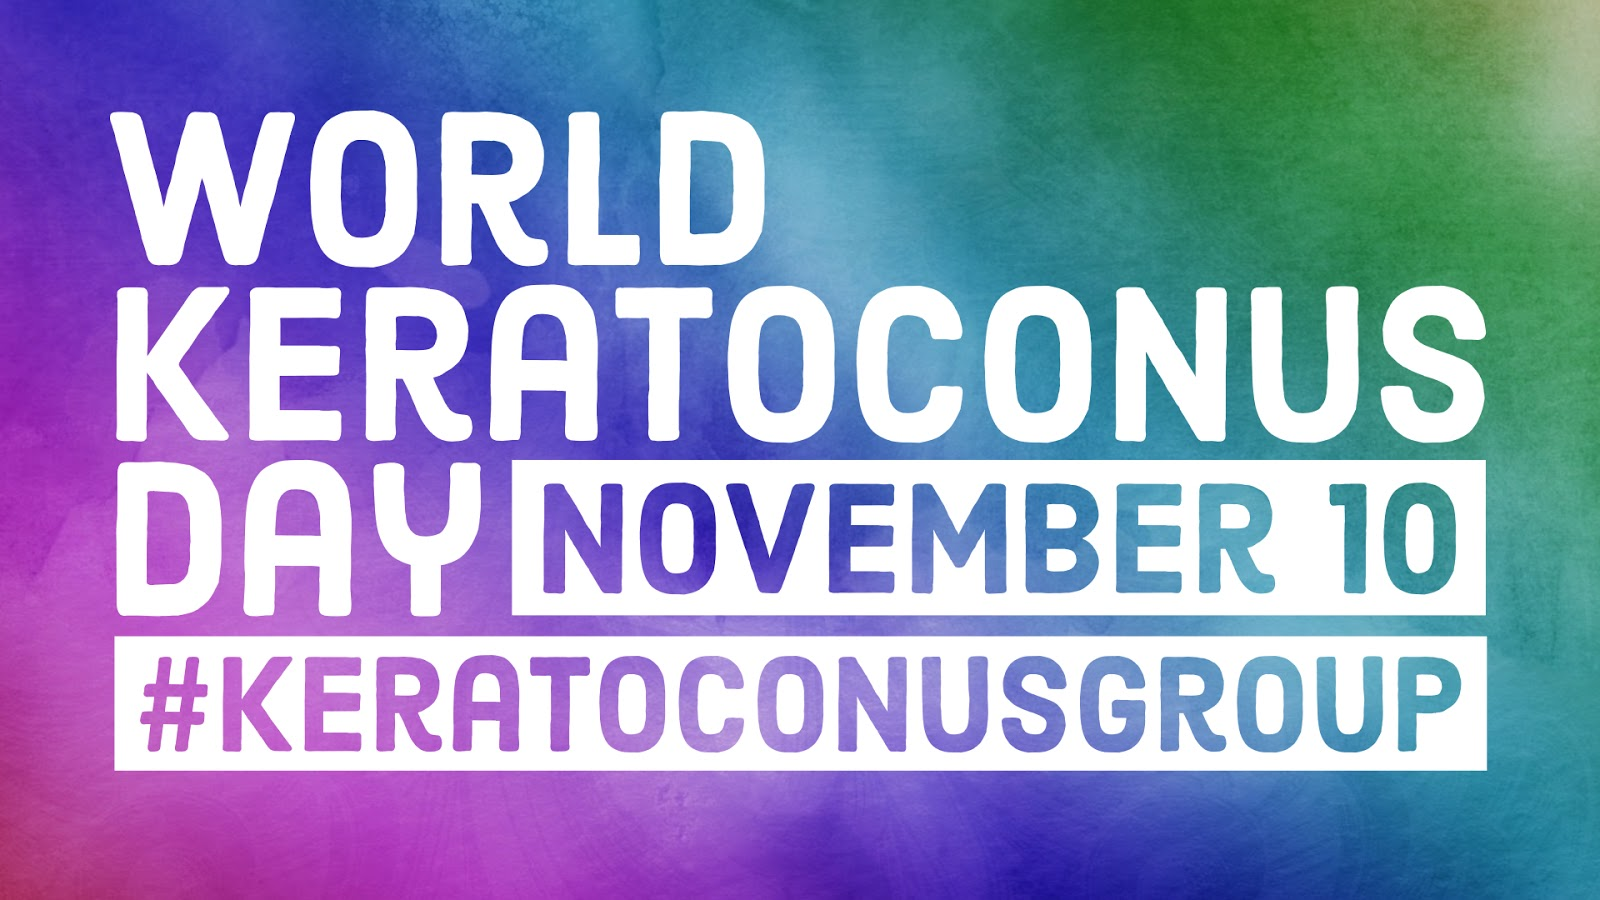 November 10 is World Keratoconus Day. Let's join together to recognize World KC Day and spread the word. This is our chance to raise awareness and hope.